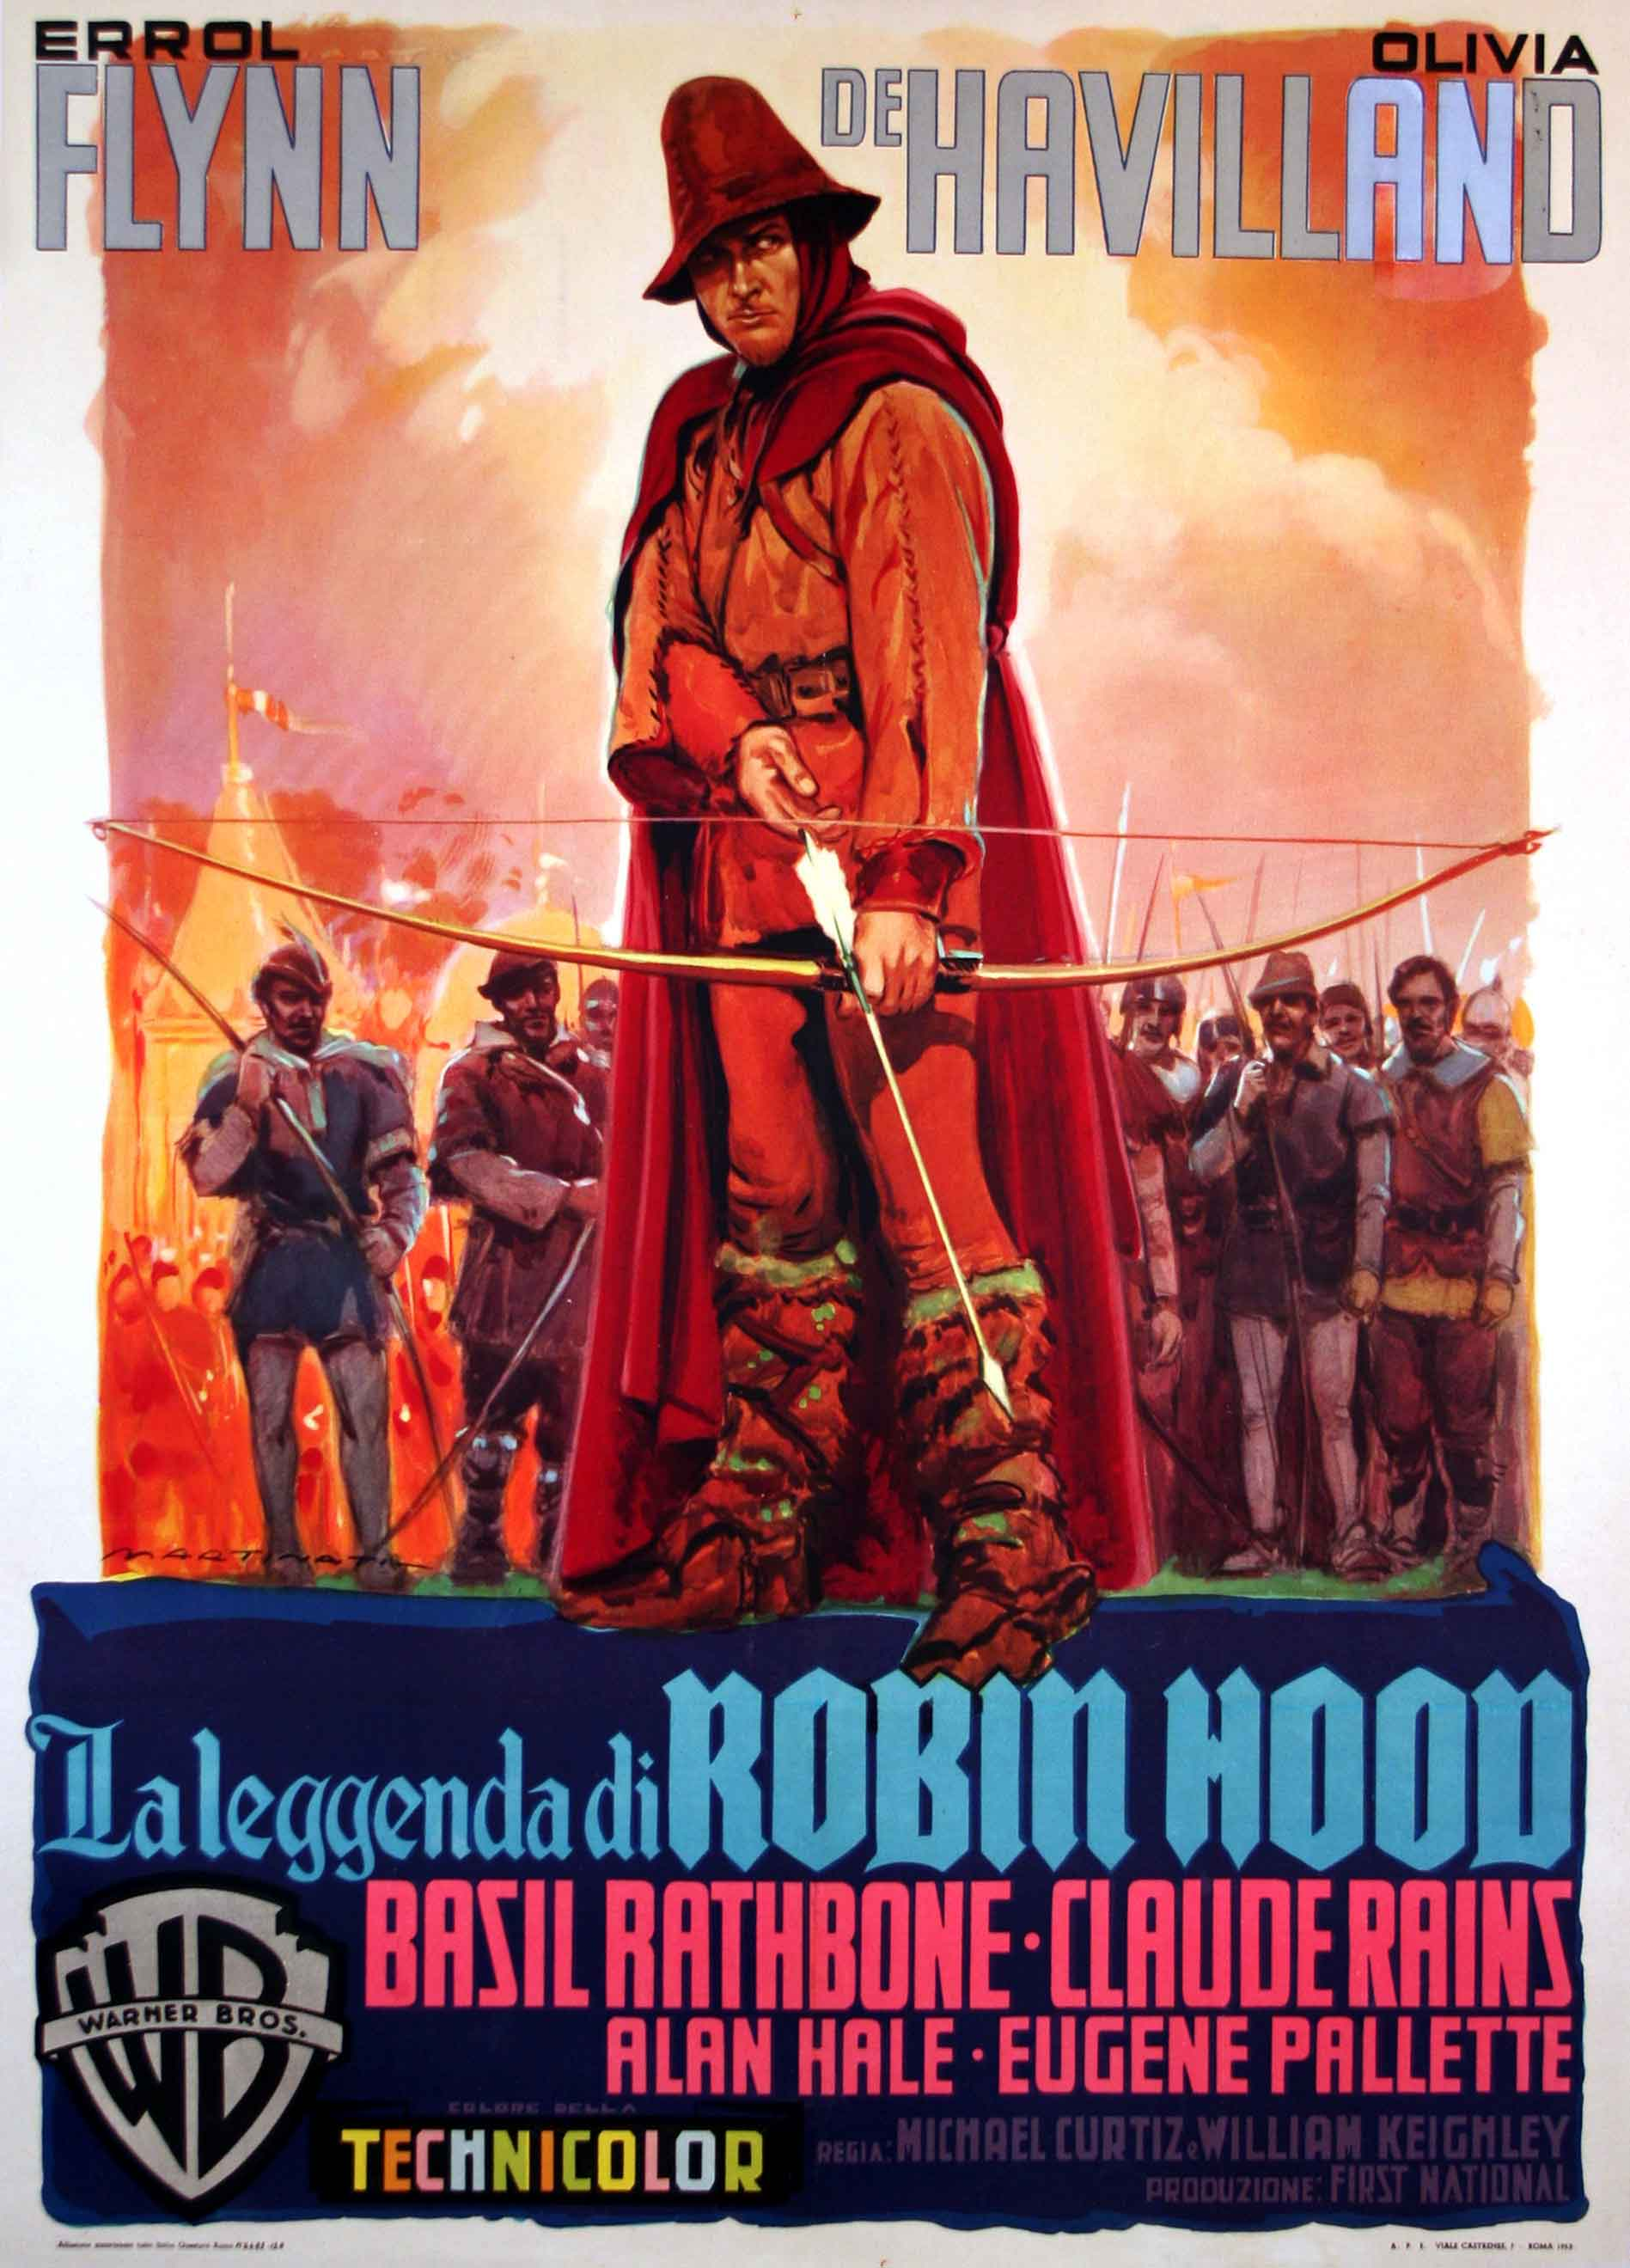 LAS AVENTURAS DE ROBIN HOOD  MOVIE POSTER  THE ADVENTURES OF ROBIN HOOD MOVIE POSTER